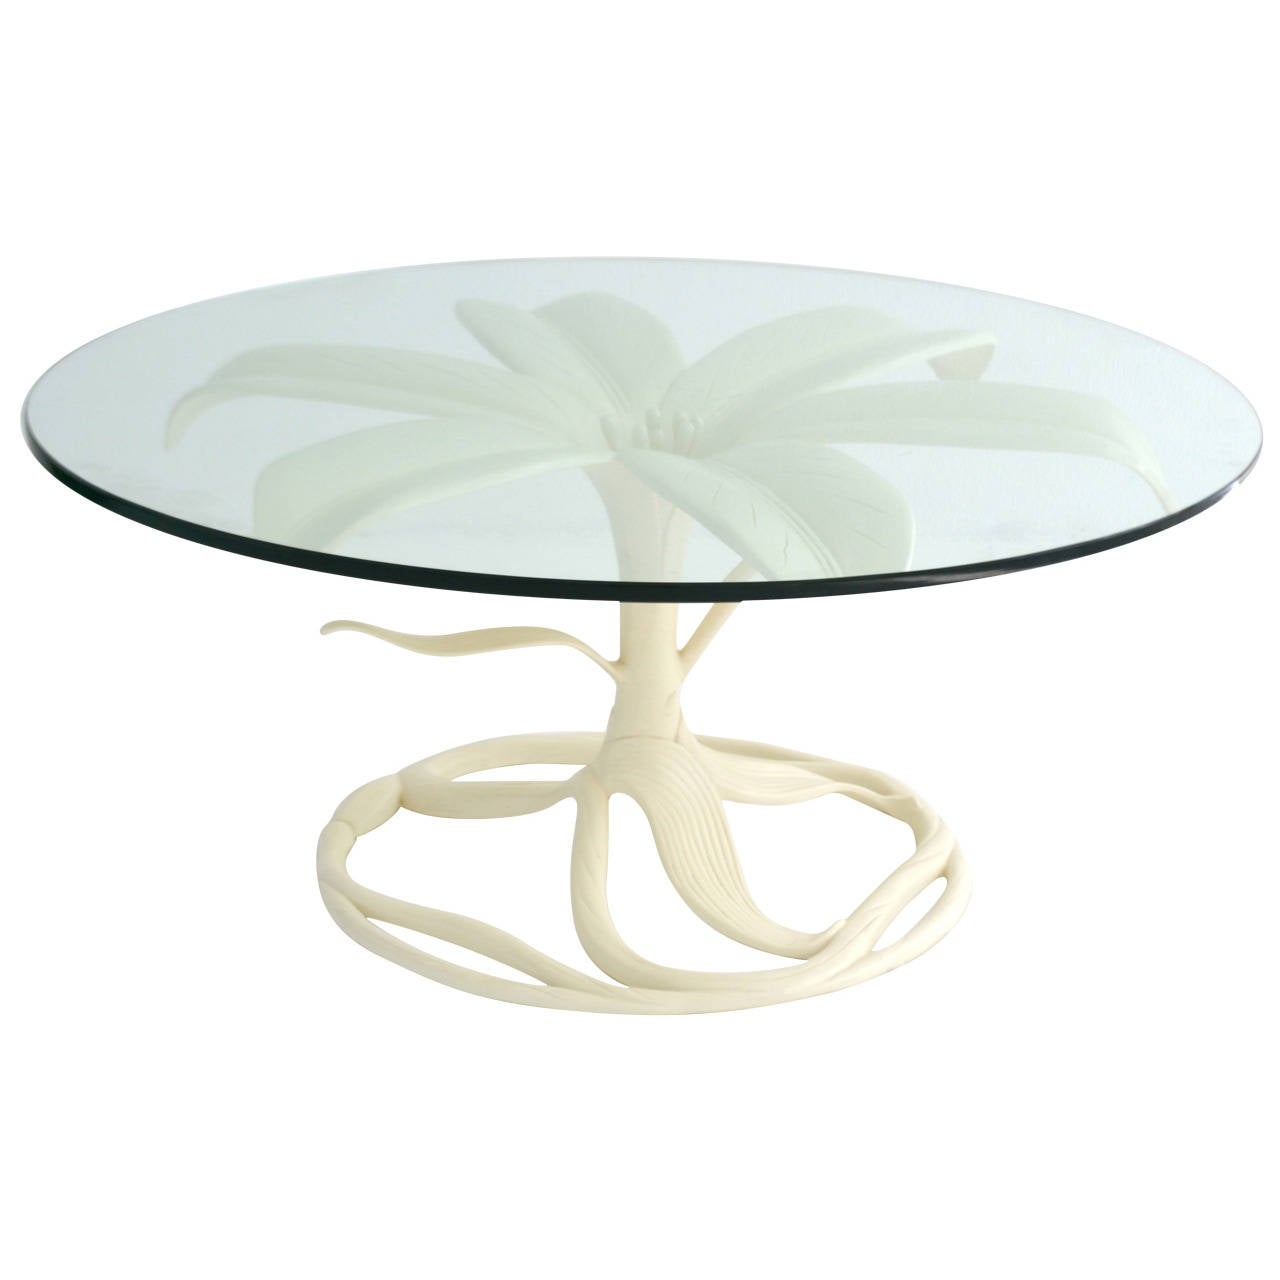 Mid Century White Lacquered Glass Top Cocktail Table By Arthur Court For Sale At 1stdibs